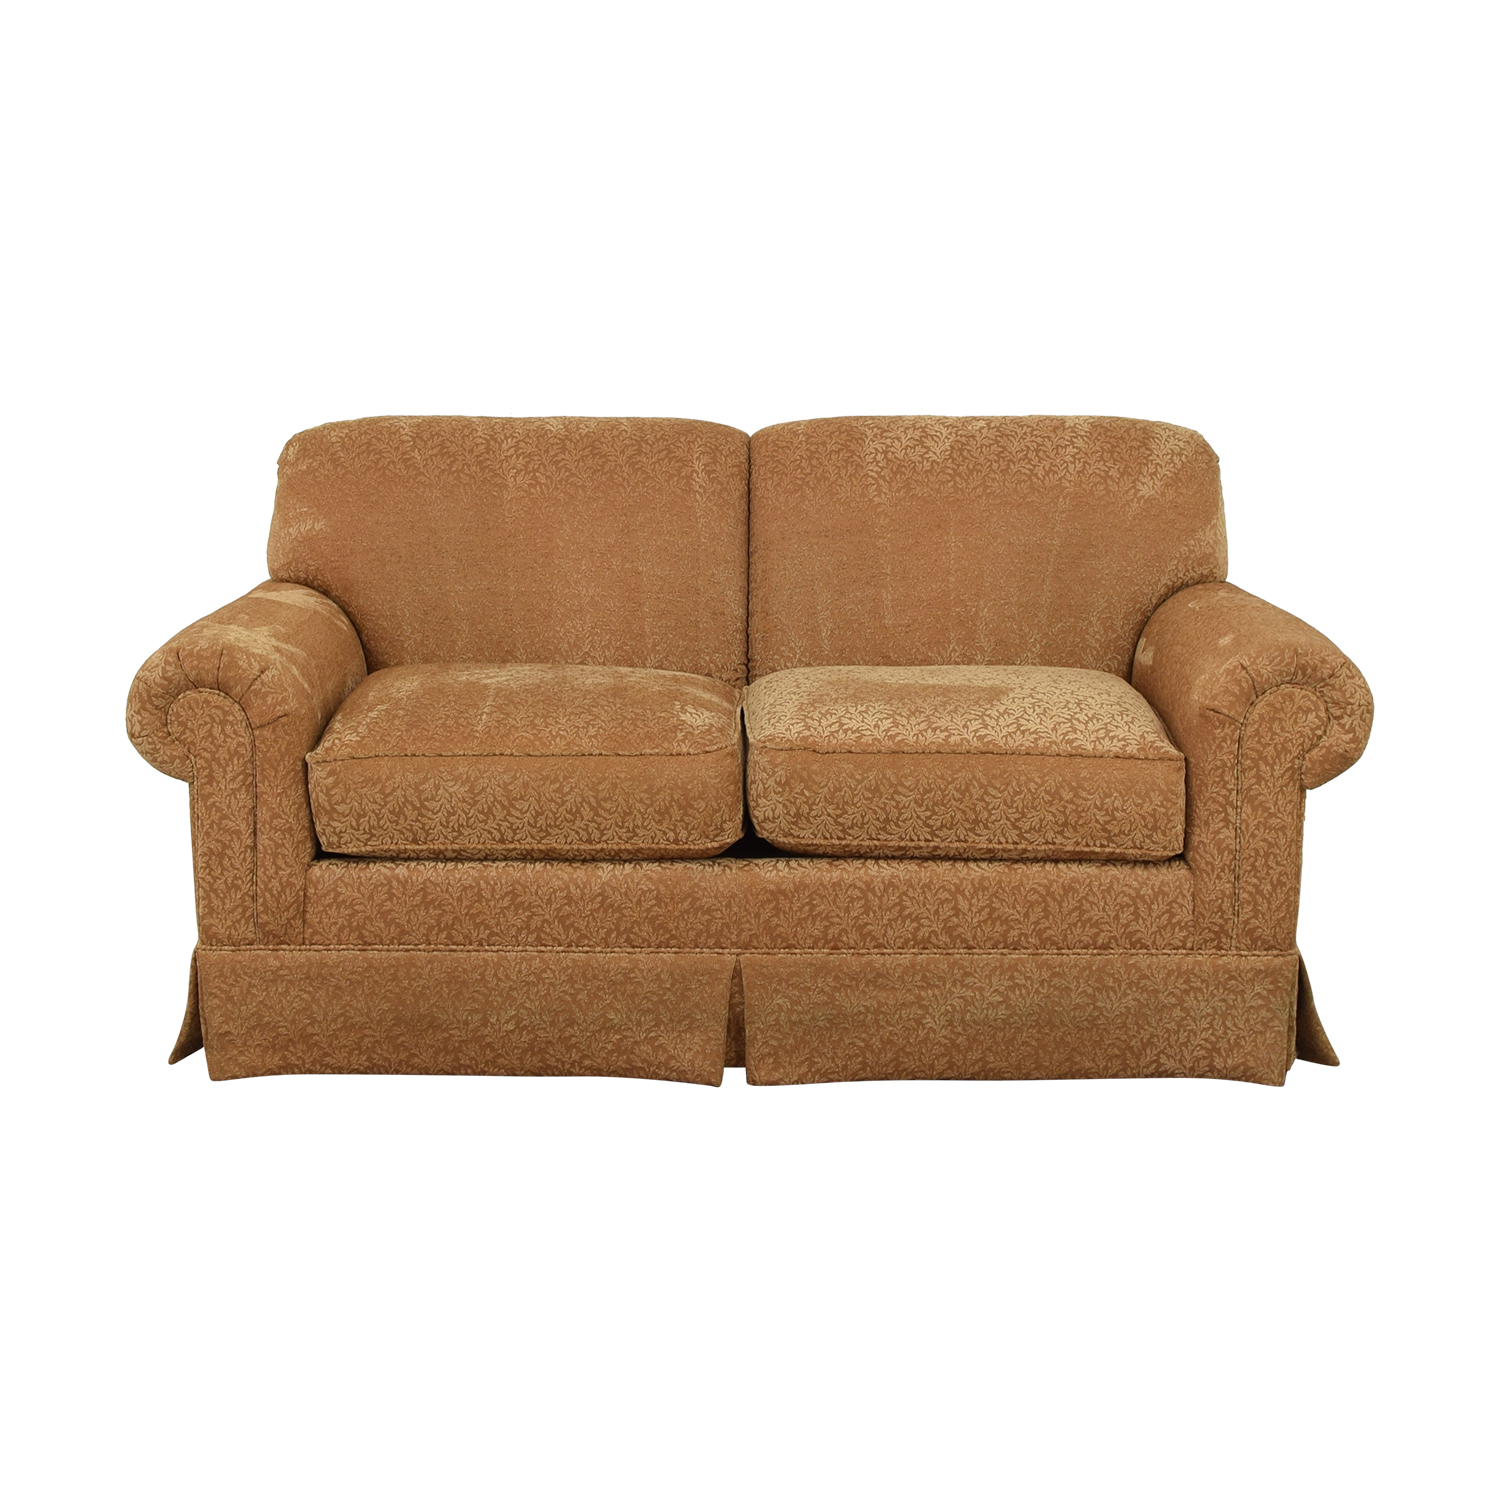 buy Thomasville Thomasville Lancaster Loveseat online